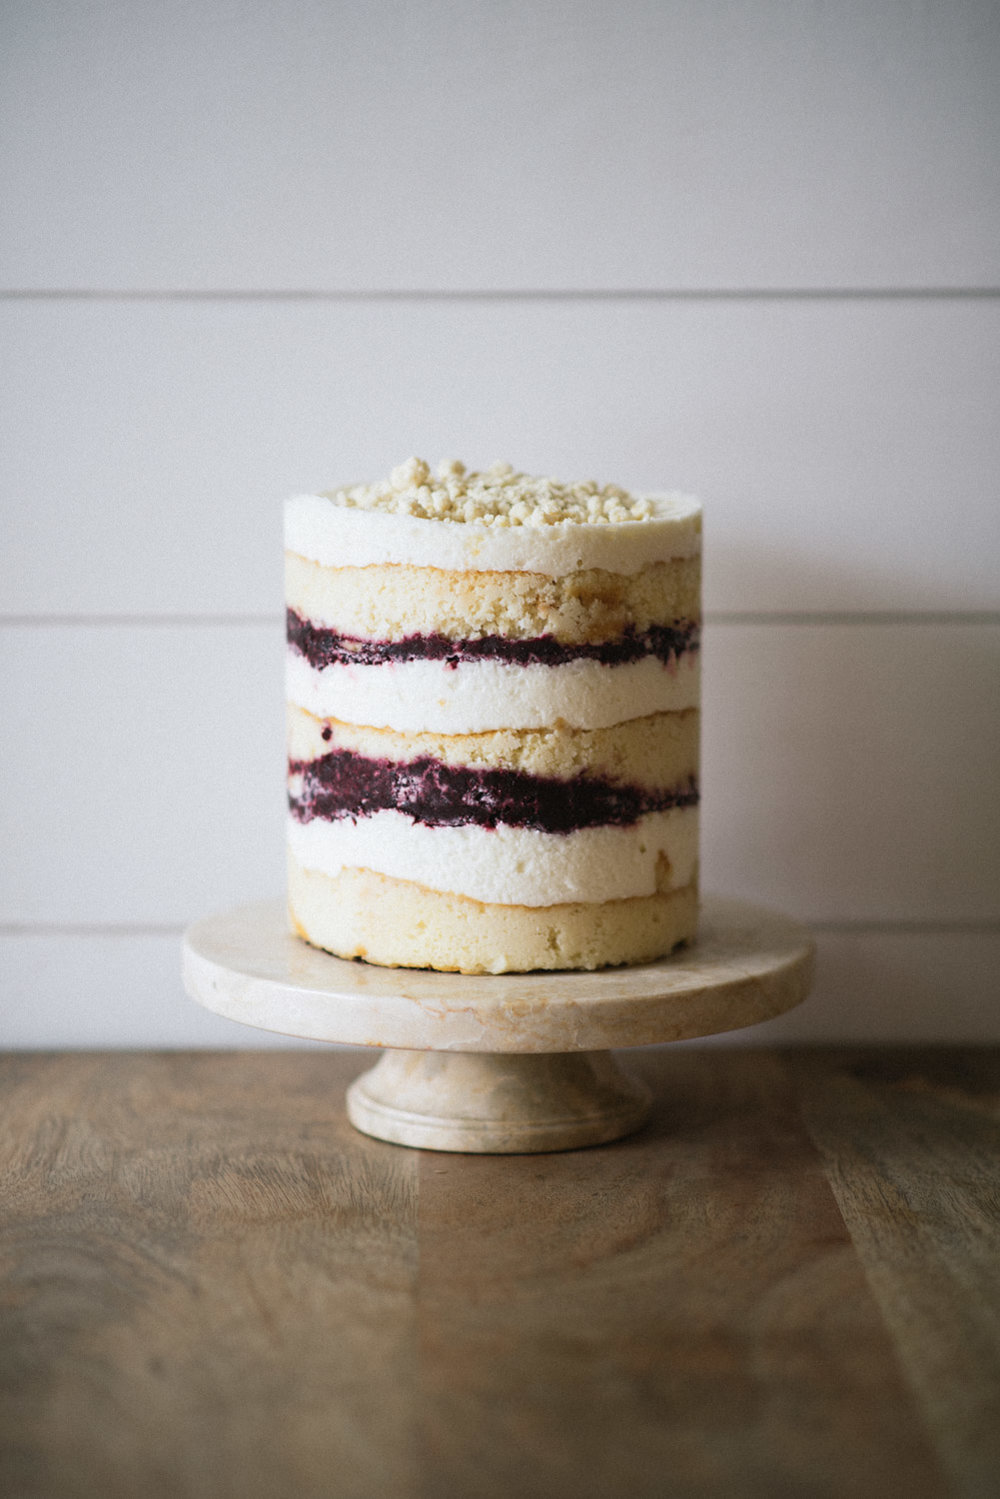 Blackberry Champagne Layer Cake // Champagne Cake, Champagne Buttercream, Blackberry Preserves, White Chocolate Milk Crumb, Gold Sprinkles